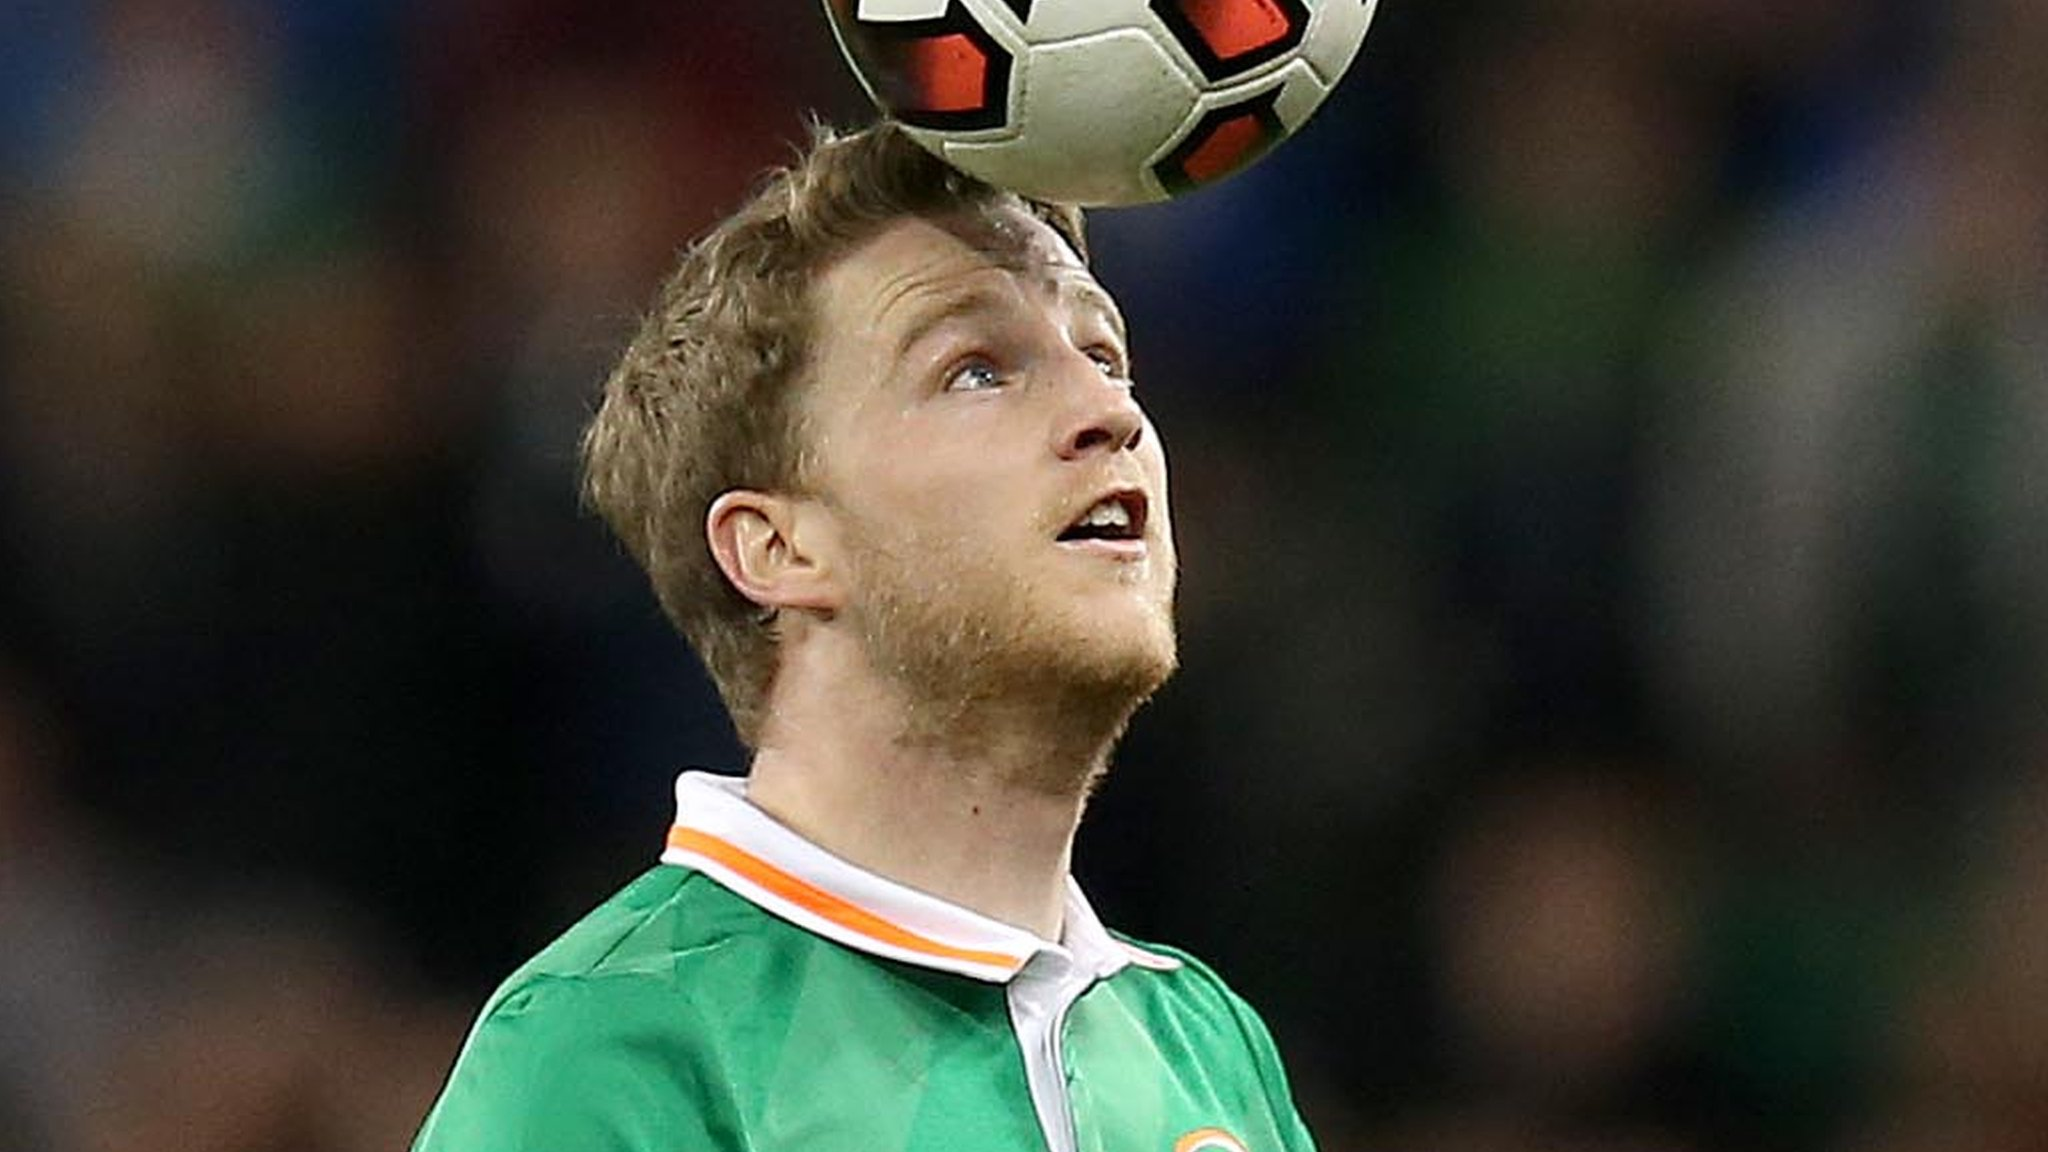 Republic of Ireland's Eunan O'Kane pulls out of France and USA games